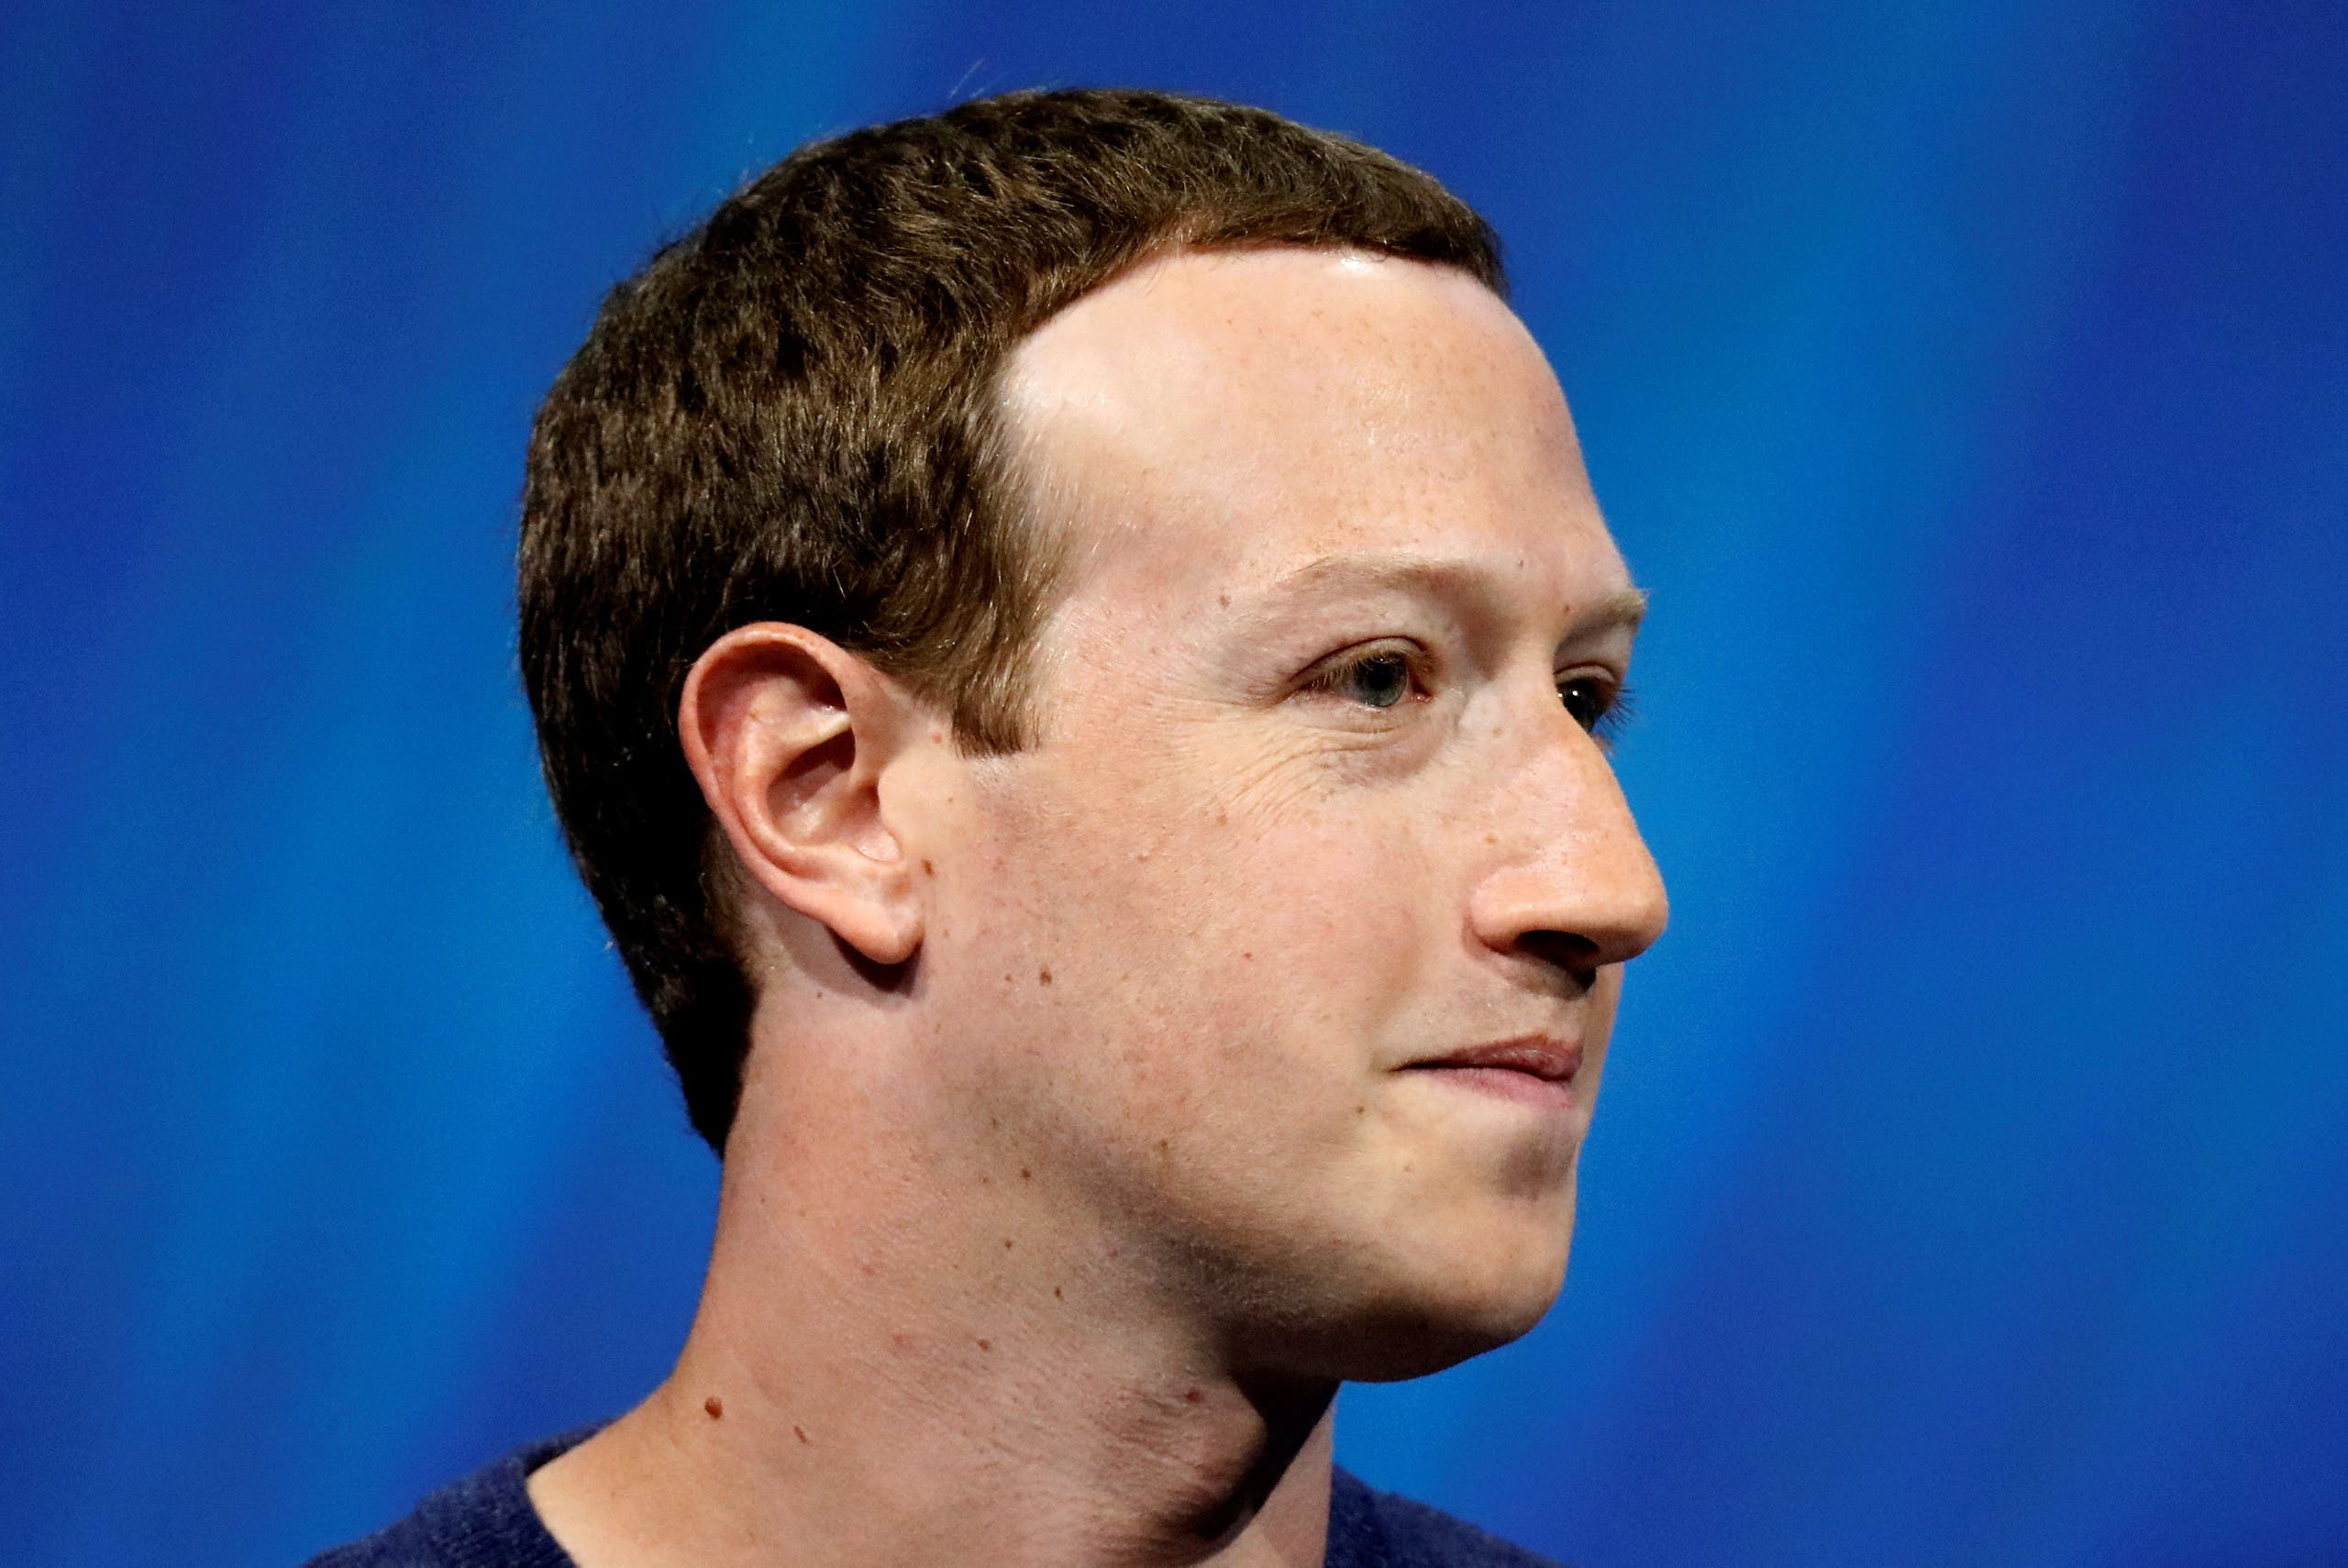 Facebook's Mark Zuckerberg (pictured) and his wife Priscilla Chan made the fourth-largest donation. (File photo: Reuters)